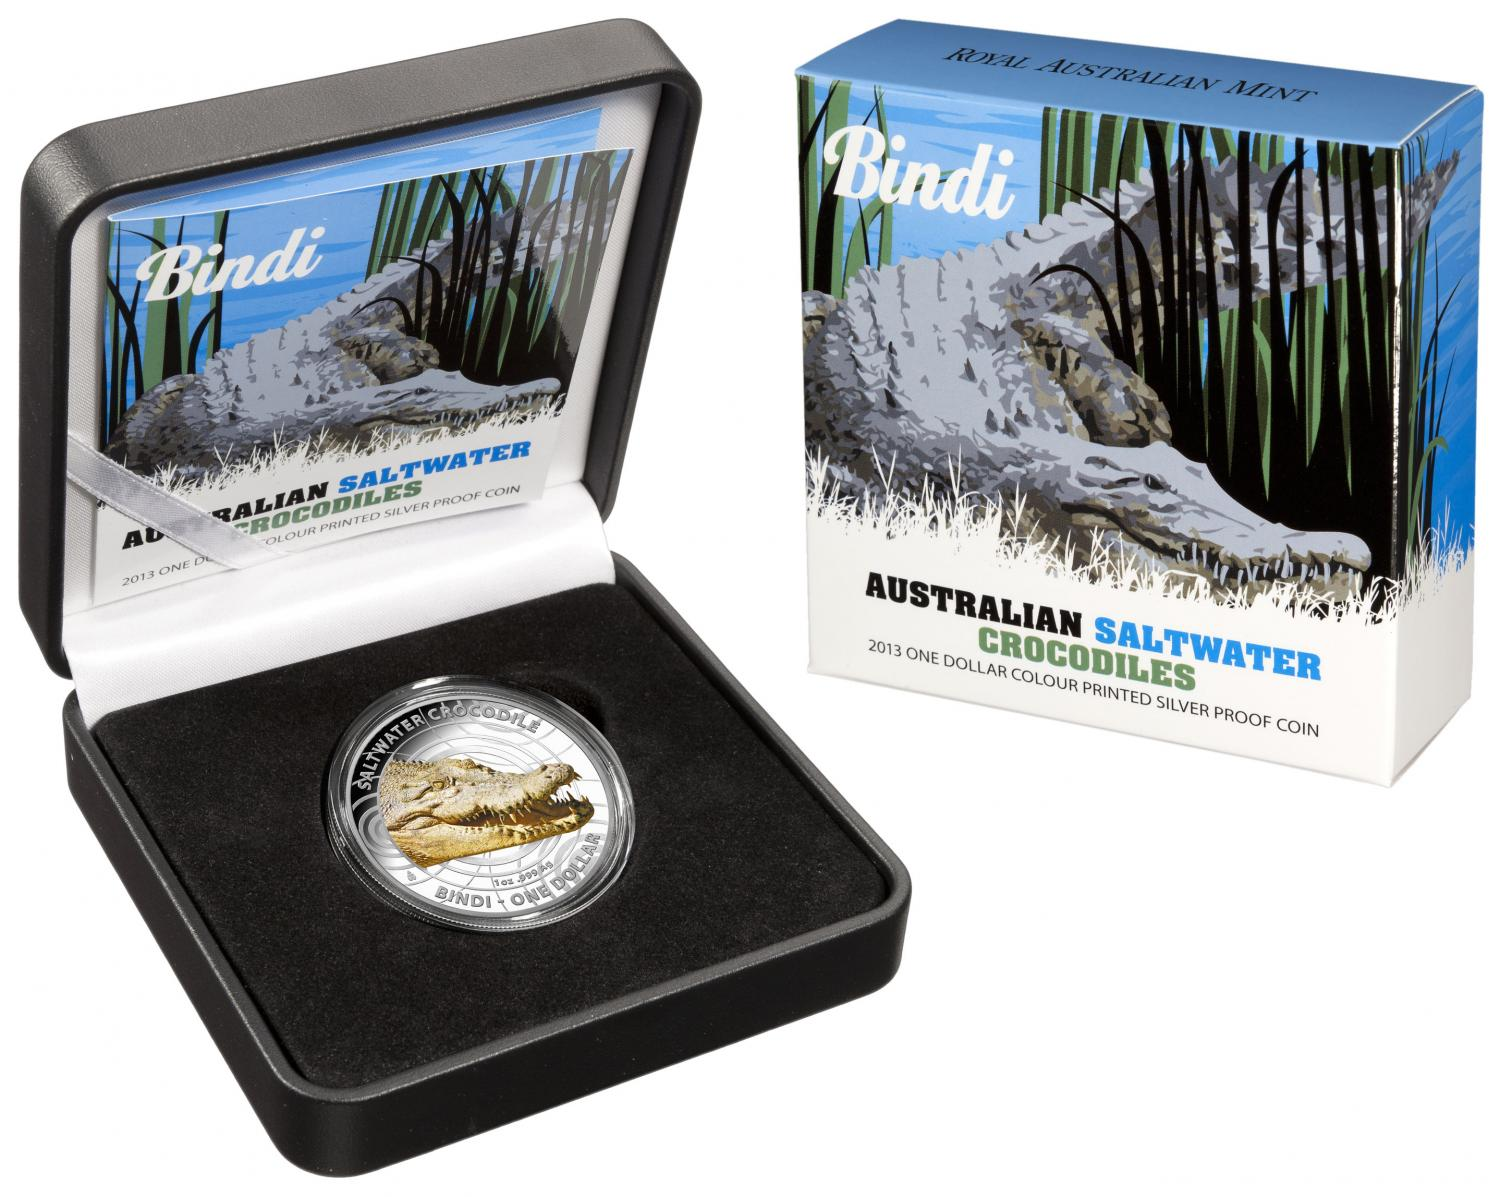 Thumbnail for 2013 1oz Coloured Silver Proof Australian Saltwater Crocodile - Bindi